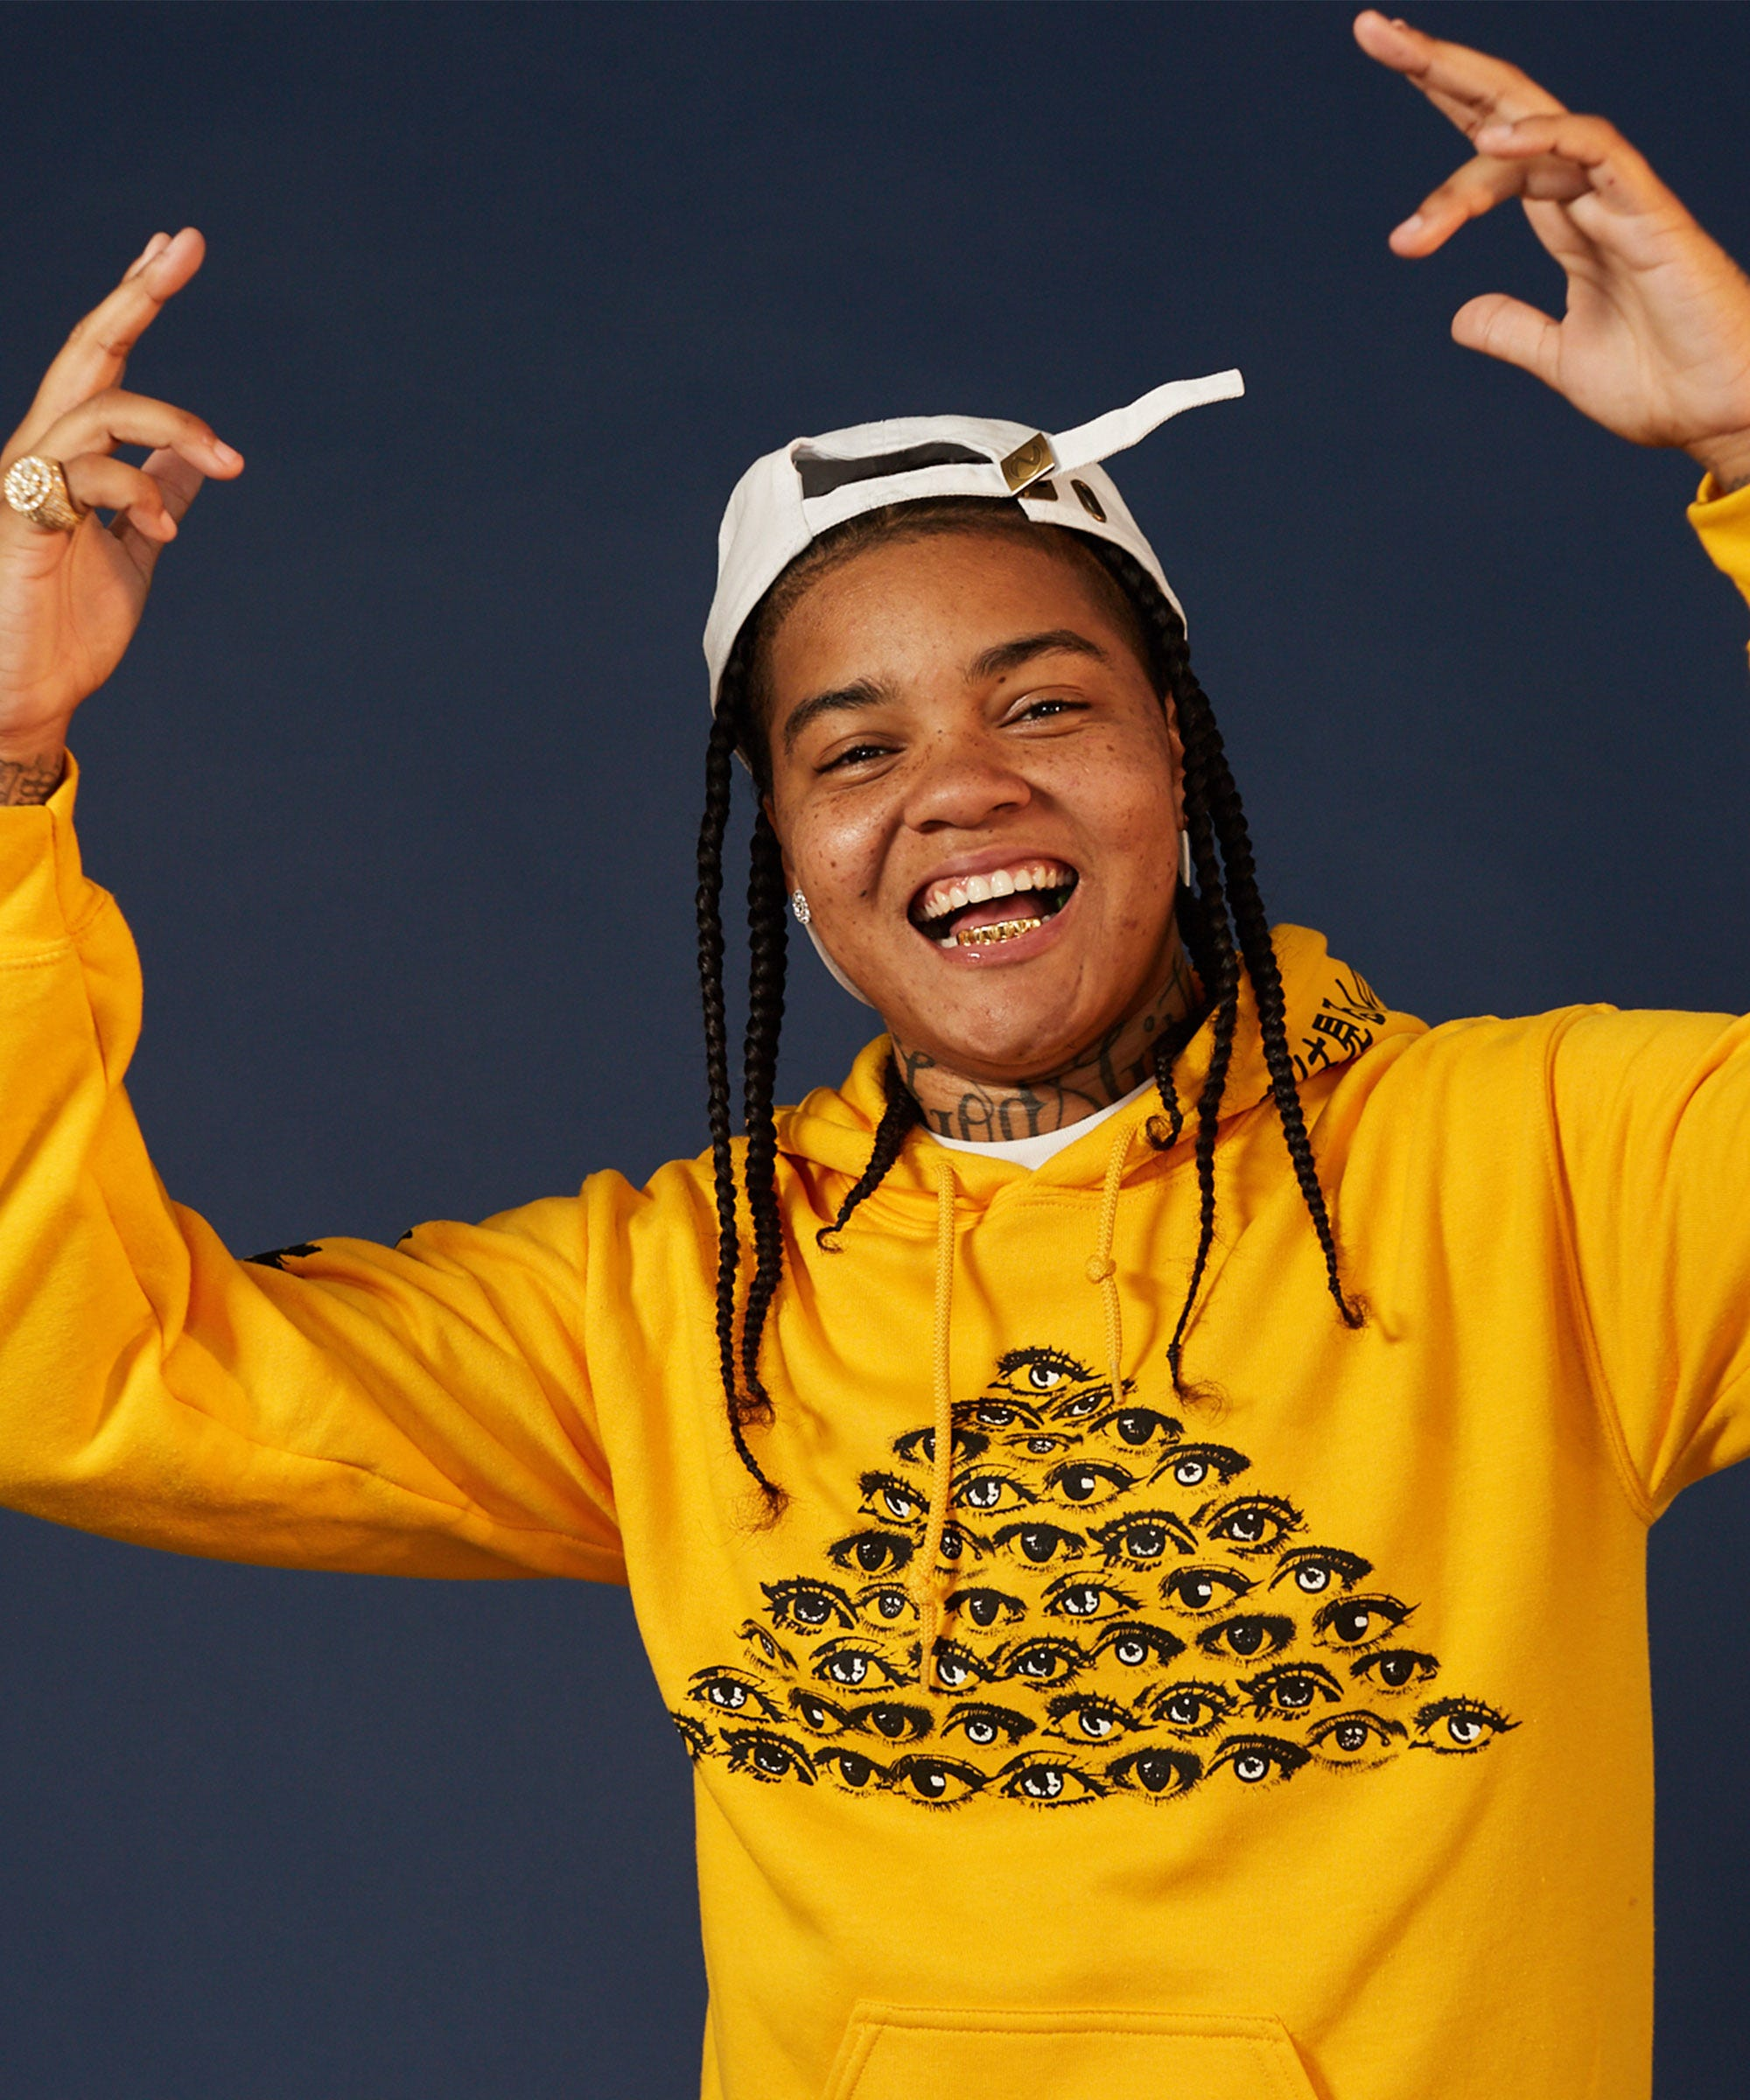 Young MA, Female Rapper Breaking Gender Stereotypes